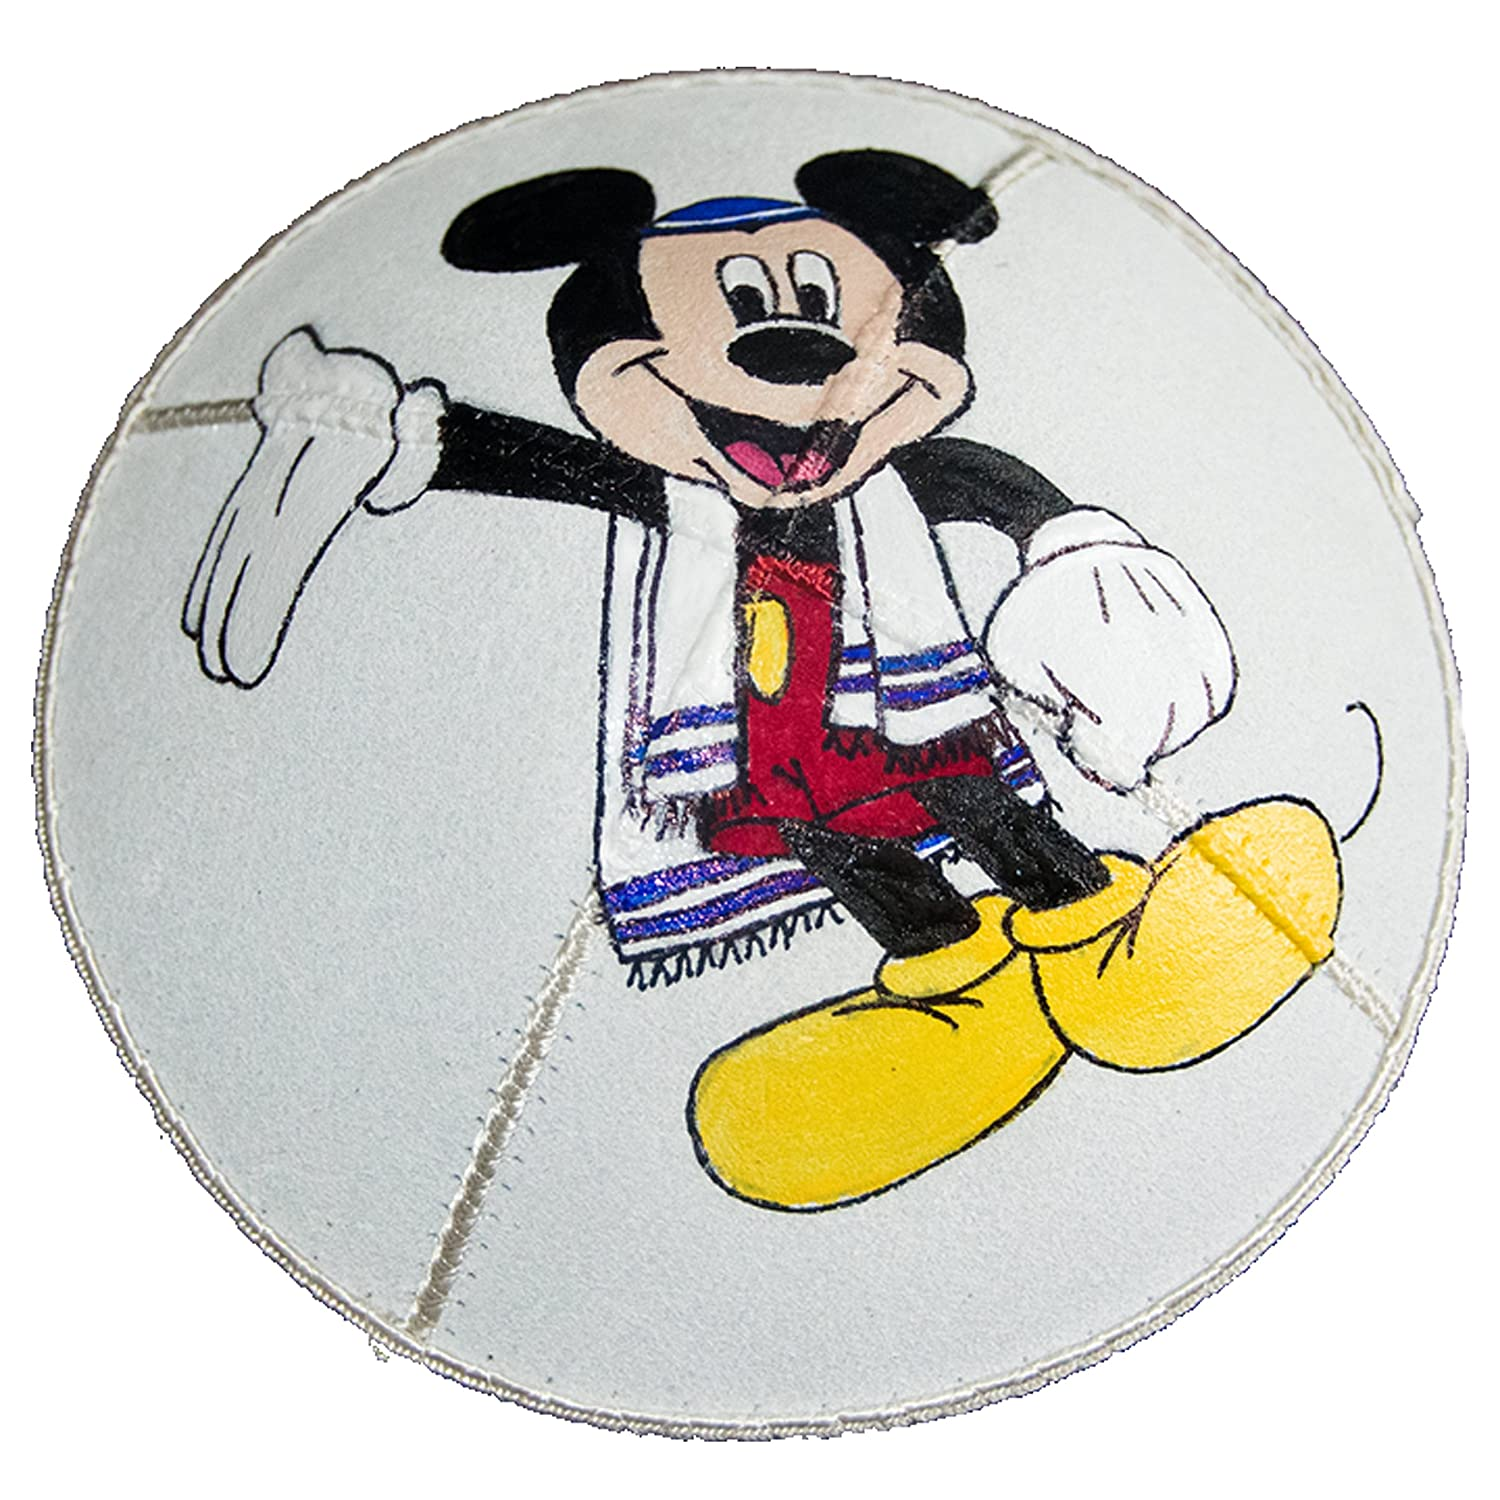 Hand-painted Kippah (Yarmulke) with a Jewish Mickey Mouse